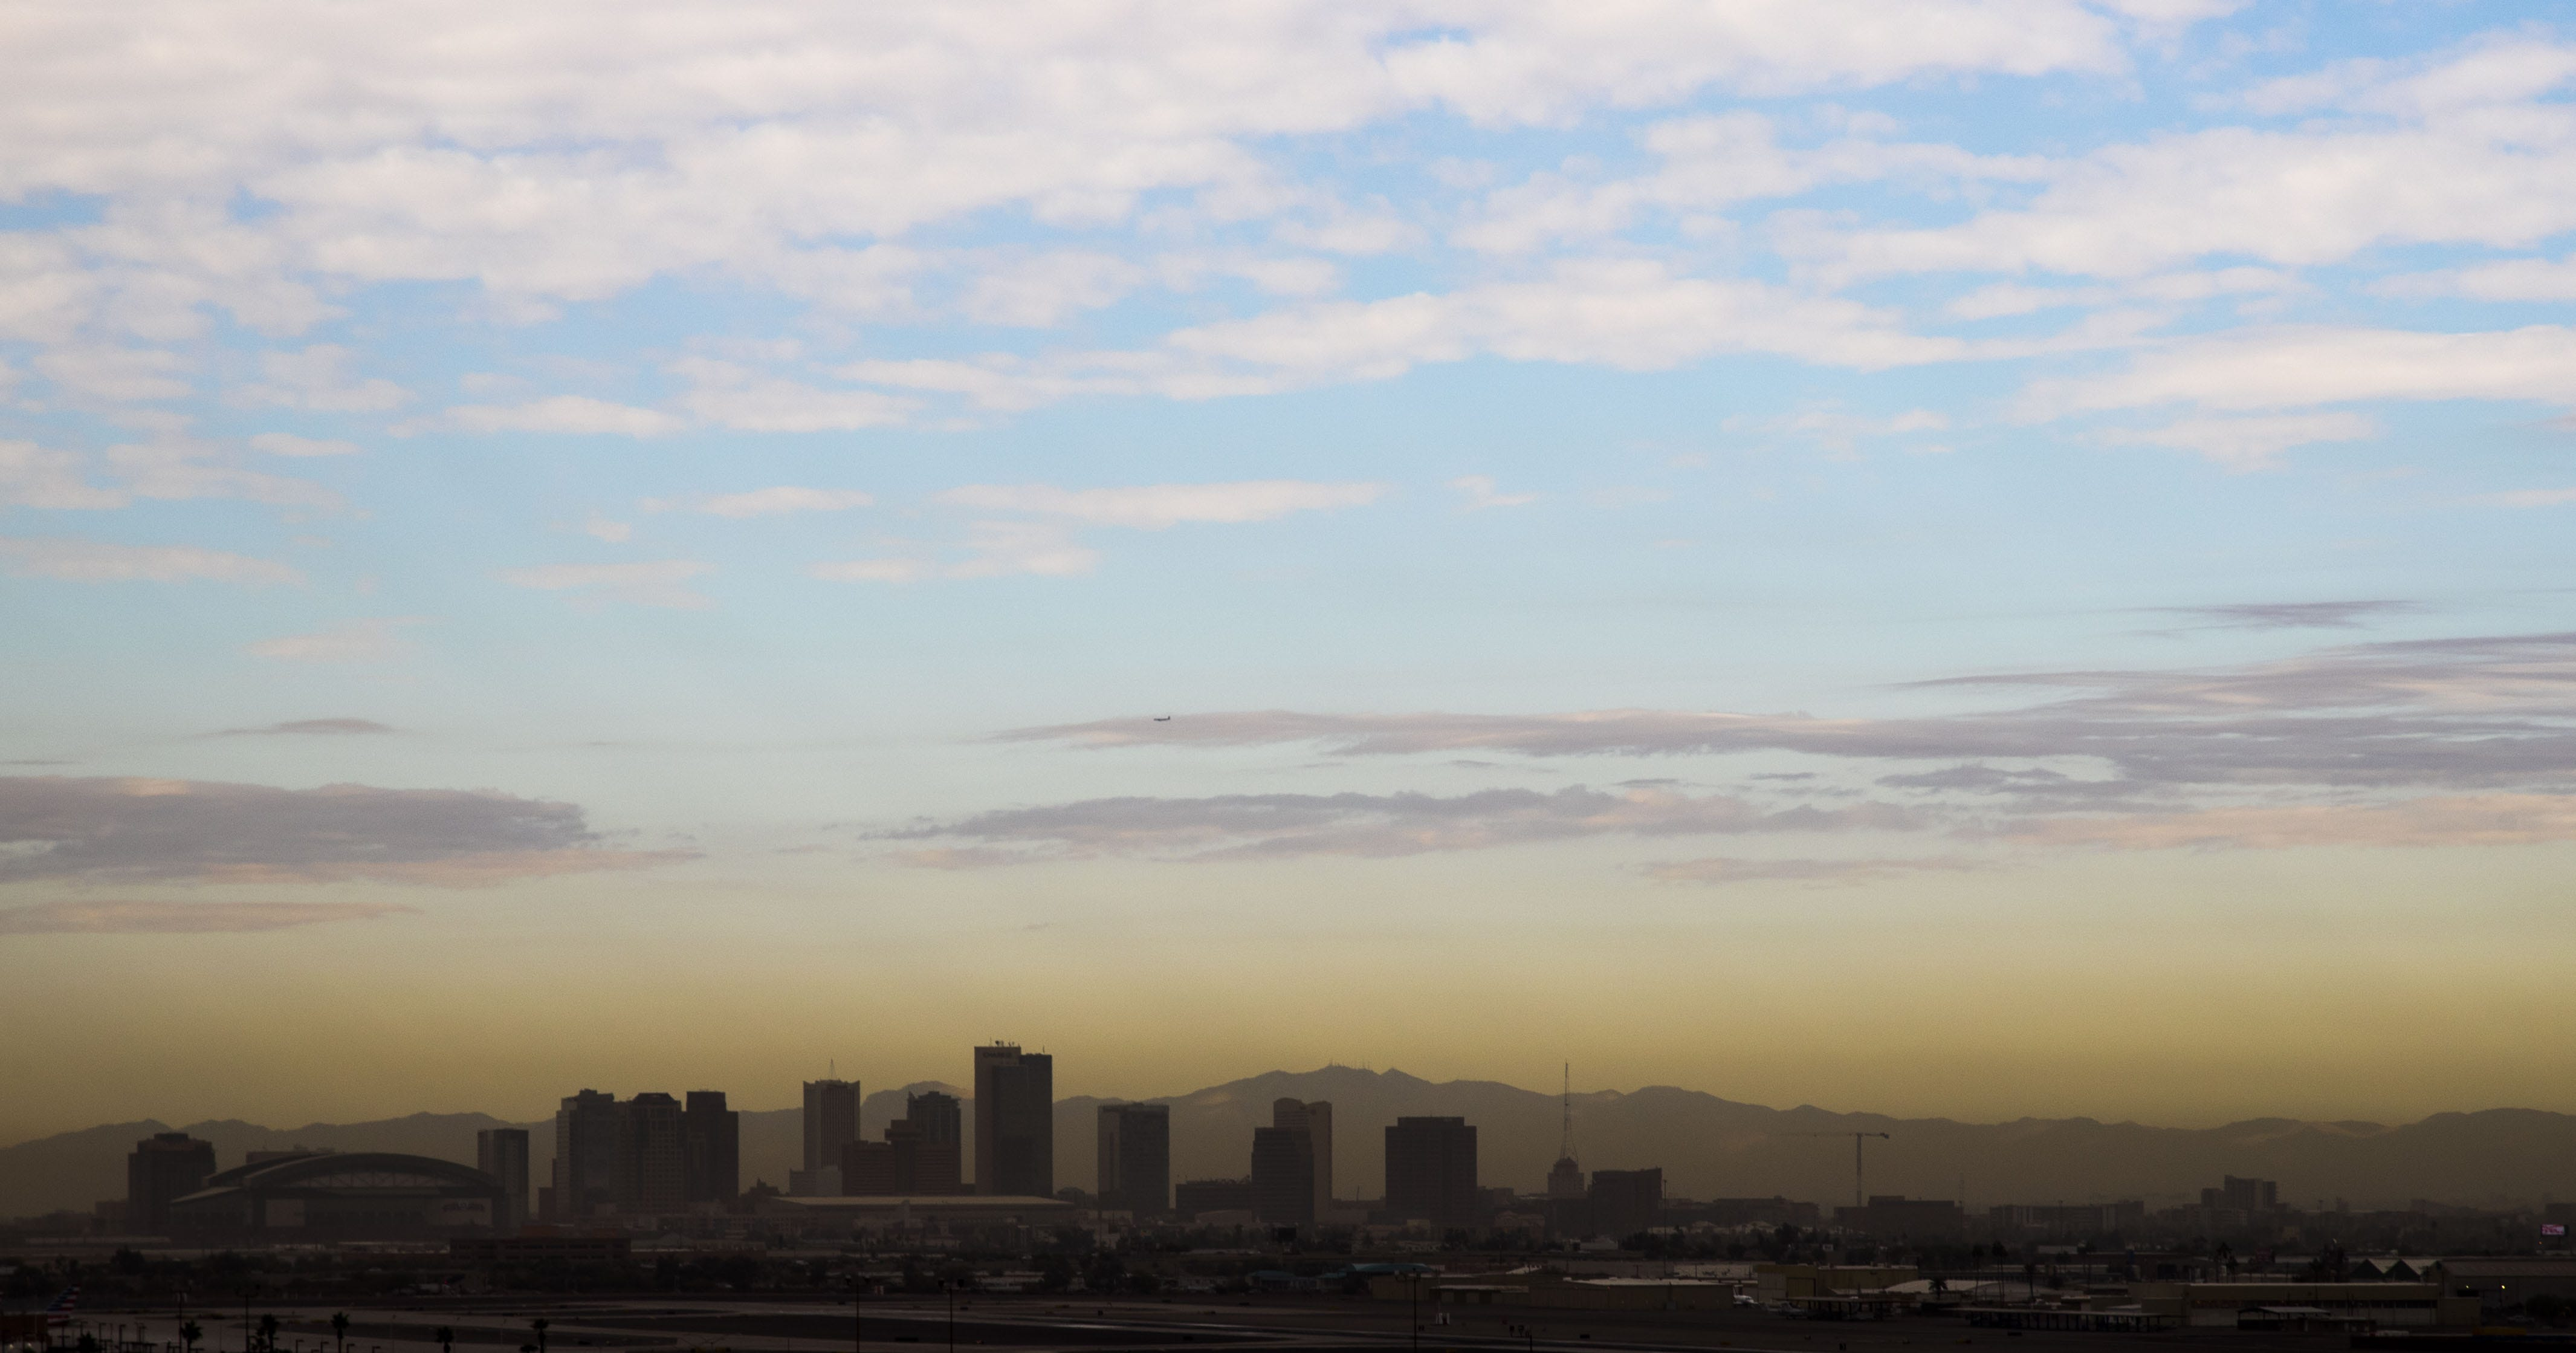 Ozone pollution advisory extended in Phoenix area | Arizona Central